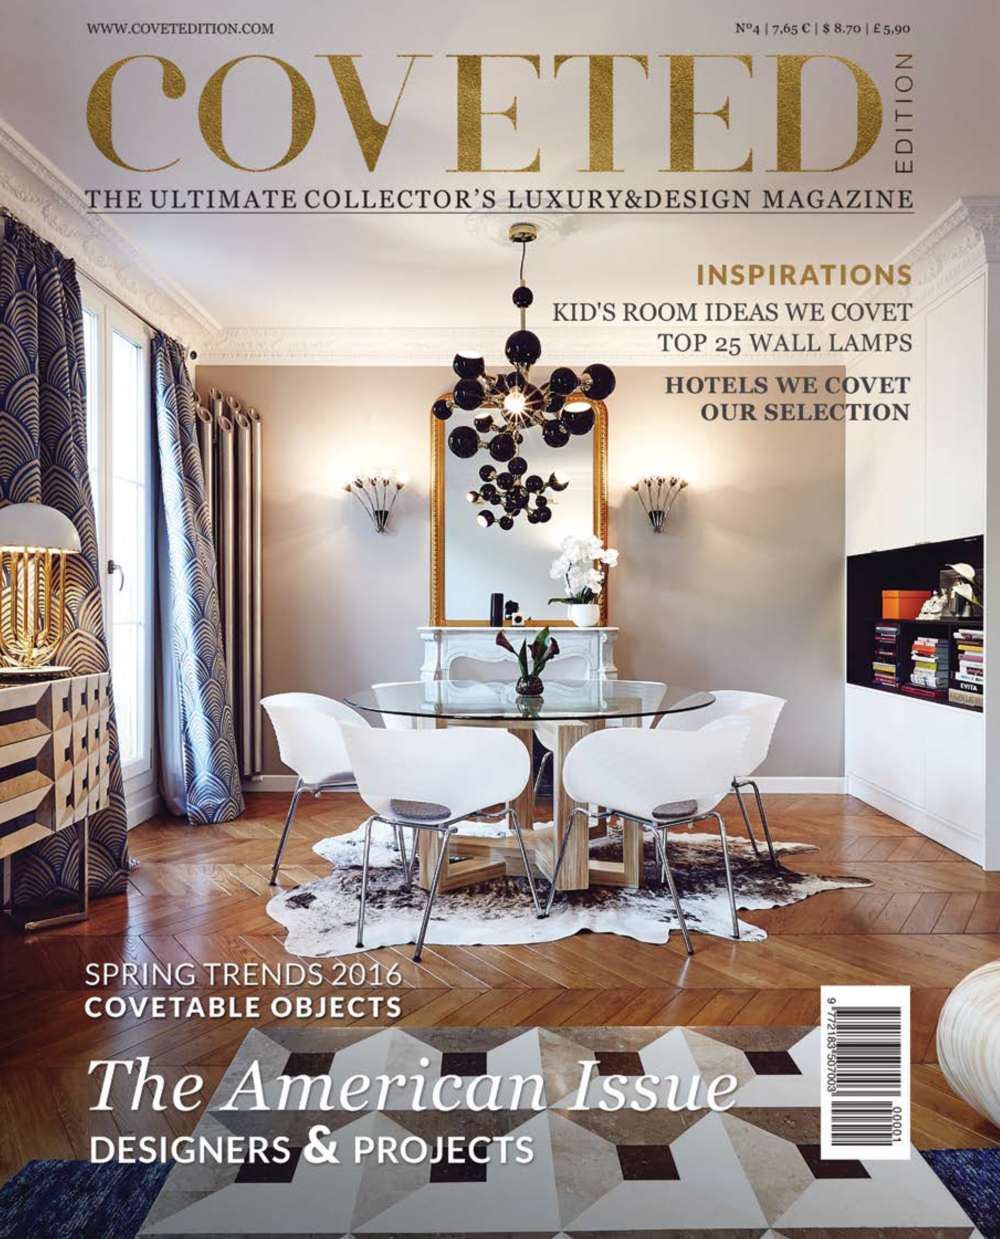 coveted-magazine-4th-edition-online 1.png